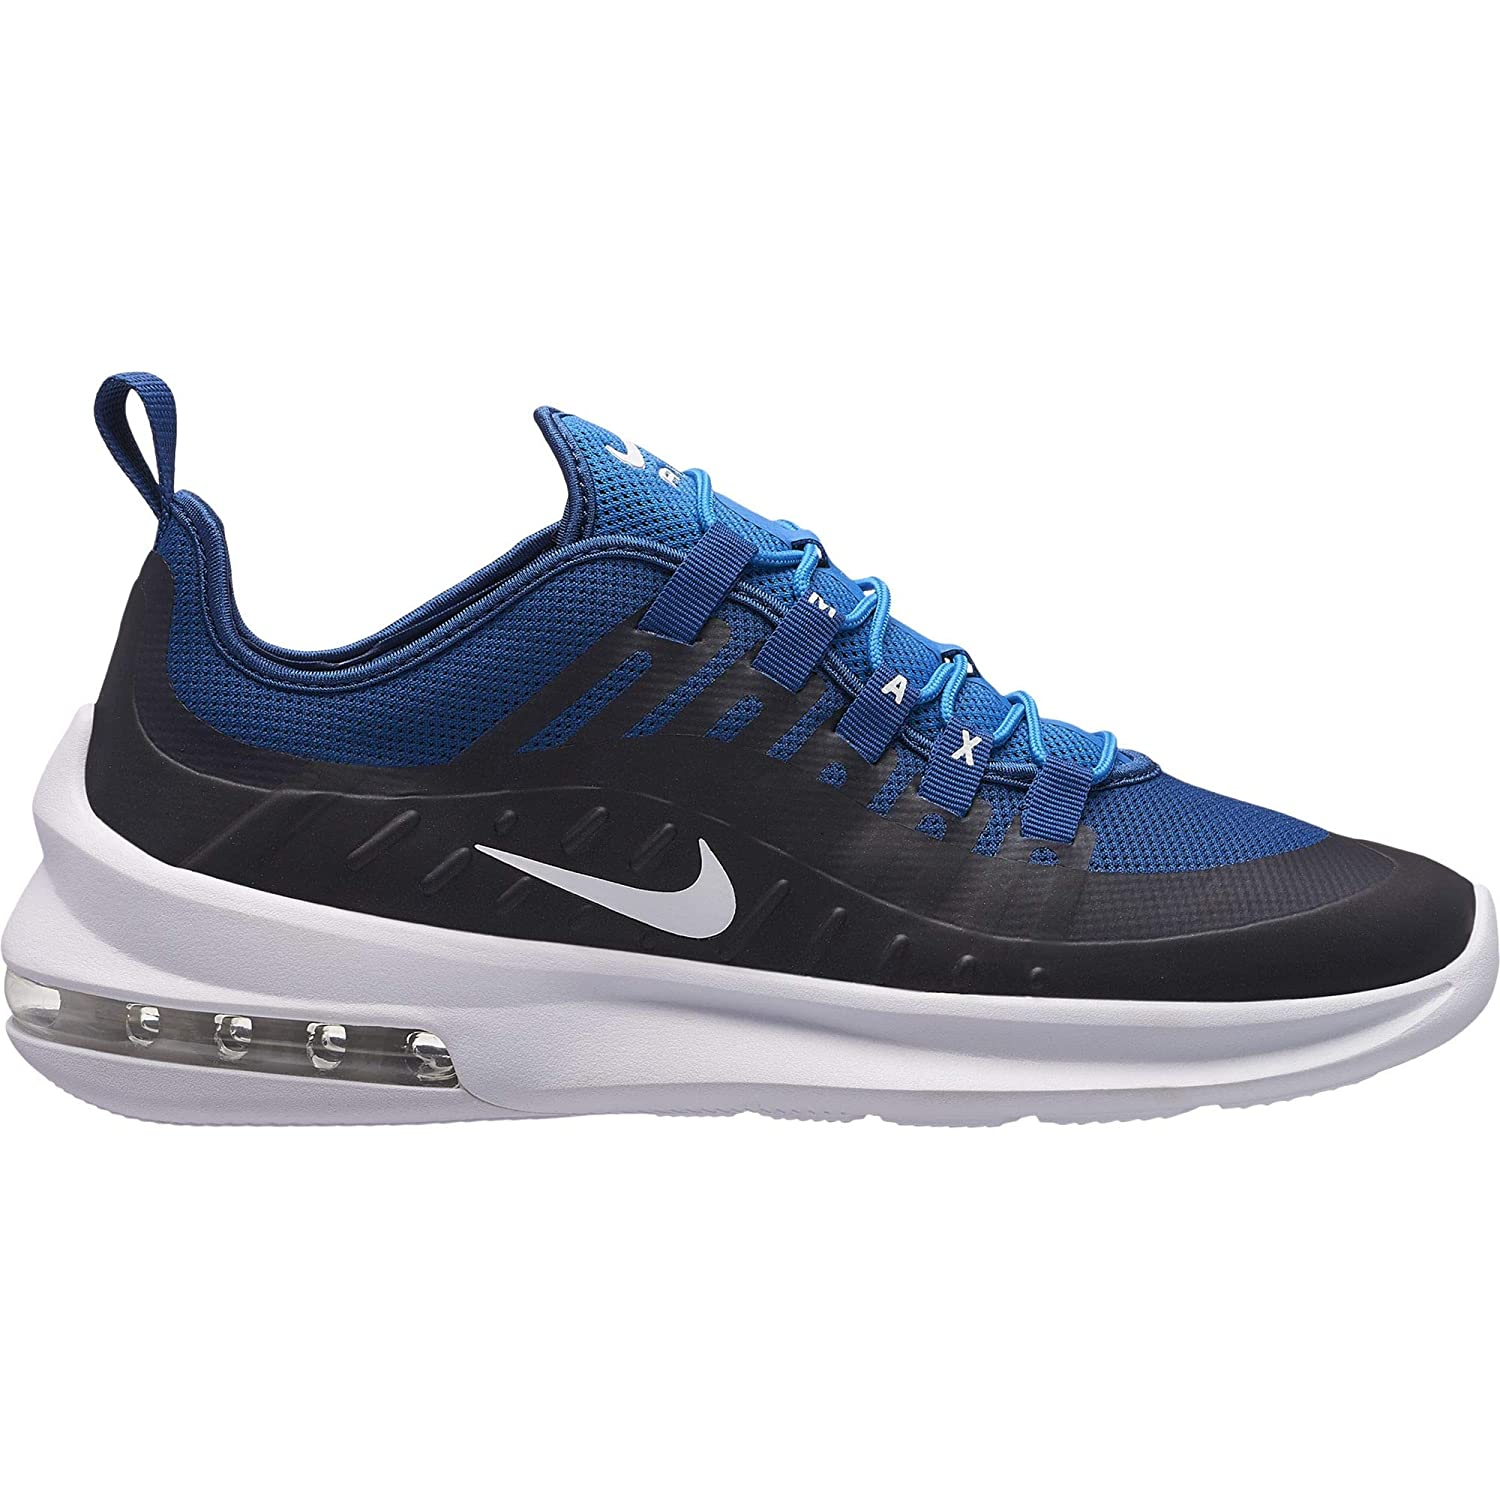 Nike AIR MAX AXIS 2018 White Running Shoes price in India Sammenlign priser  Compare Prices